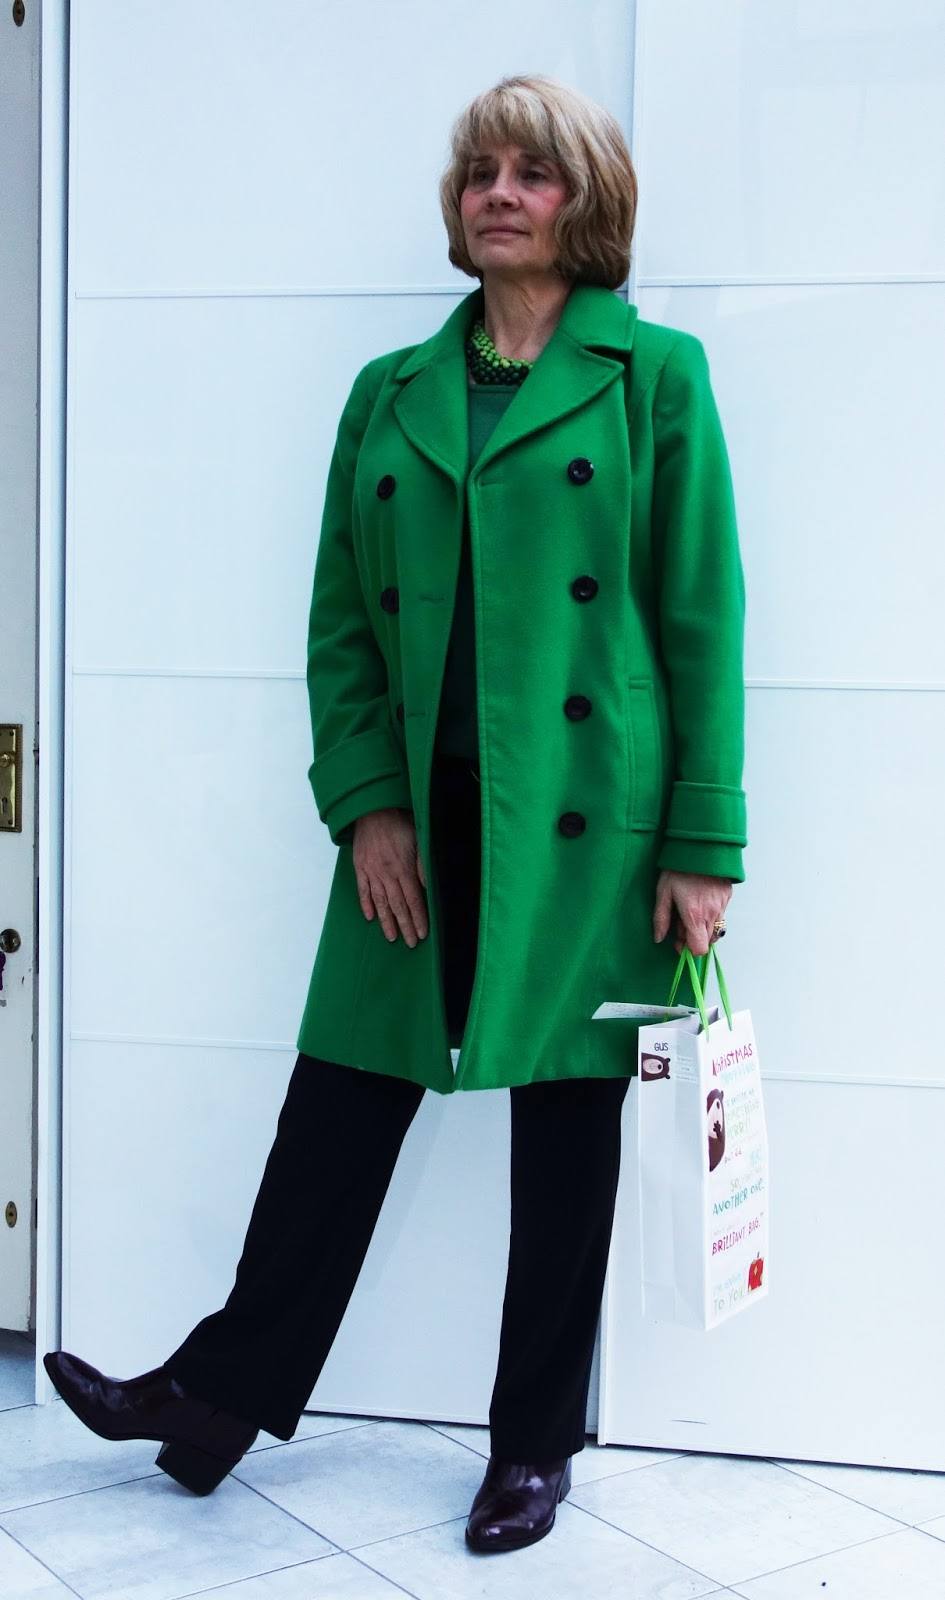 Green coat from Marks and Spencer, green jumper from Boden